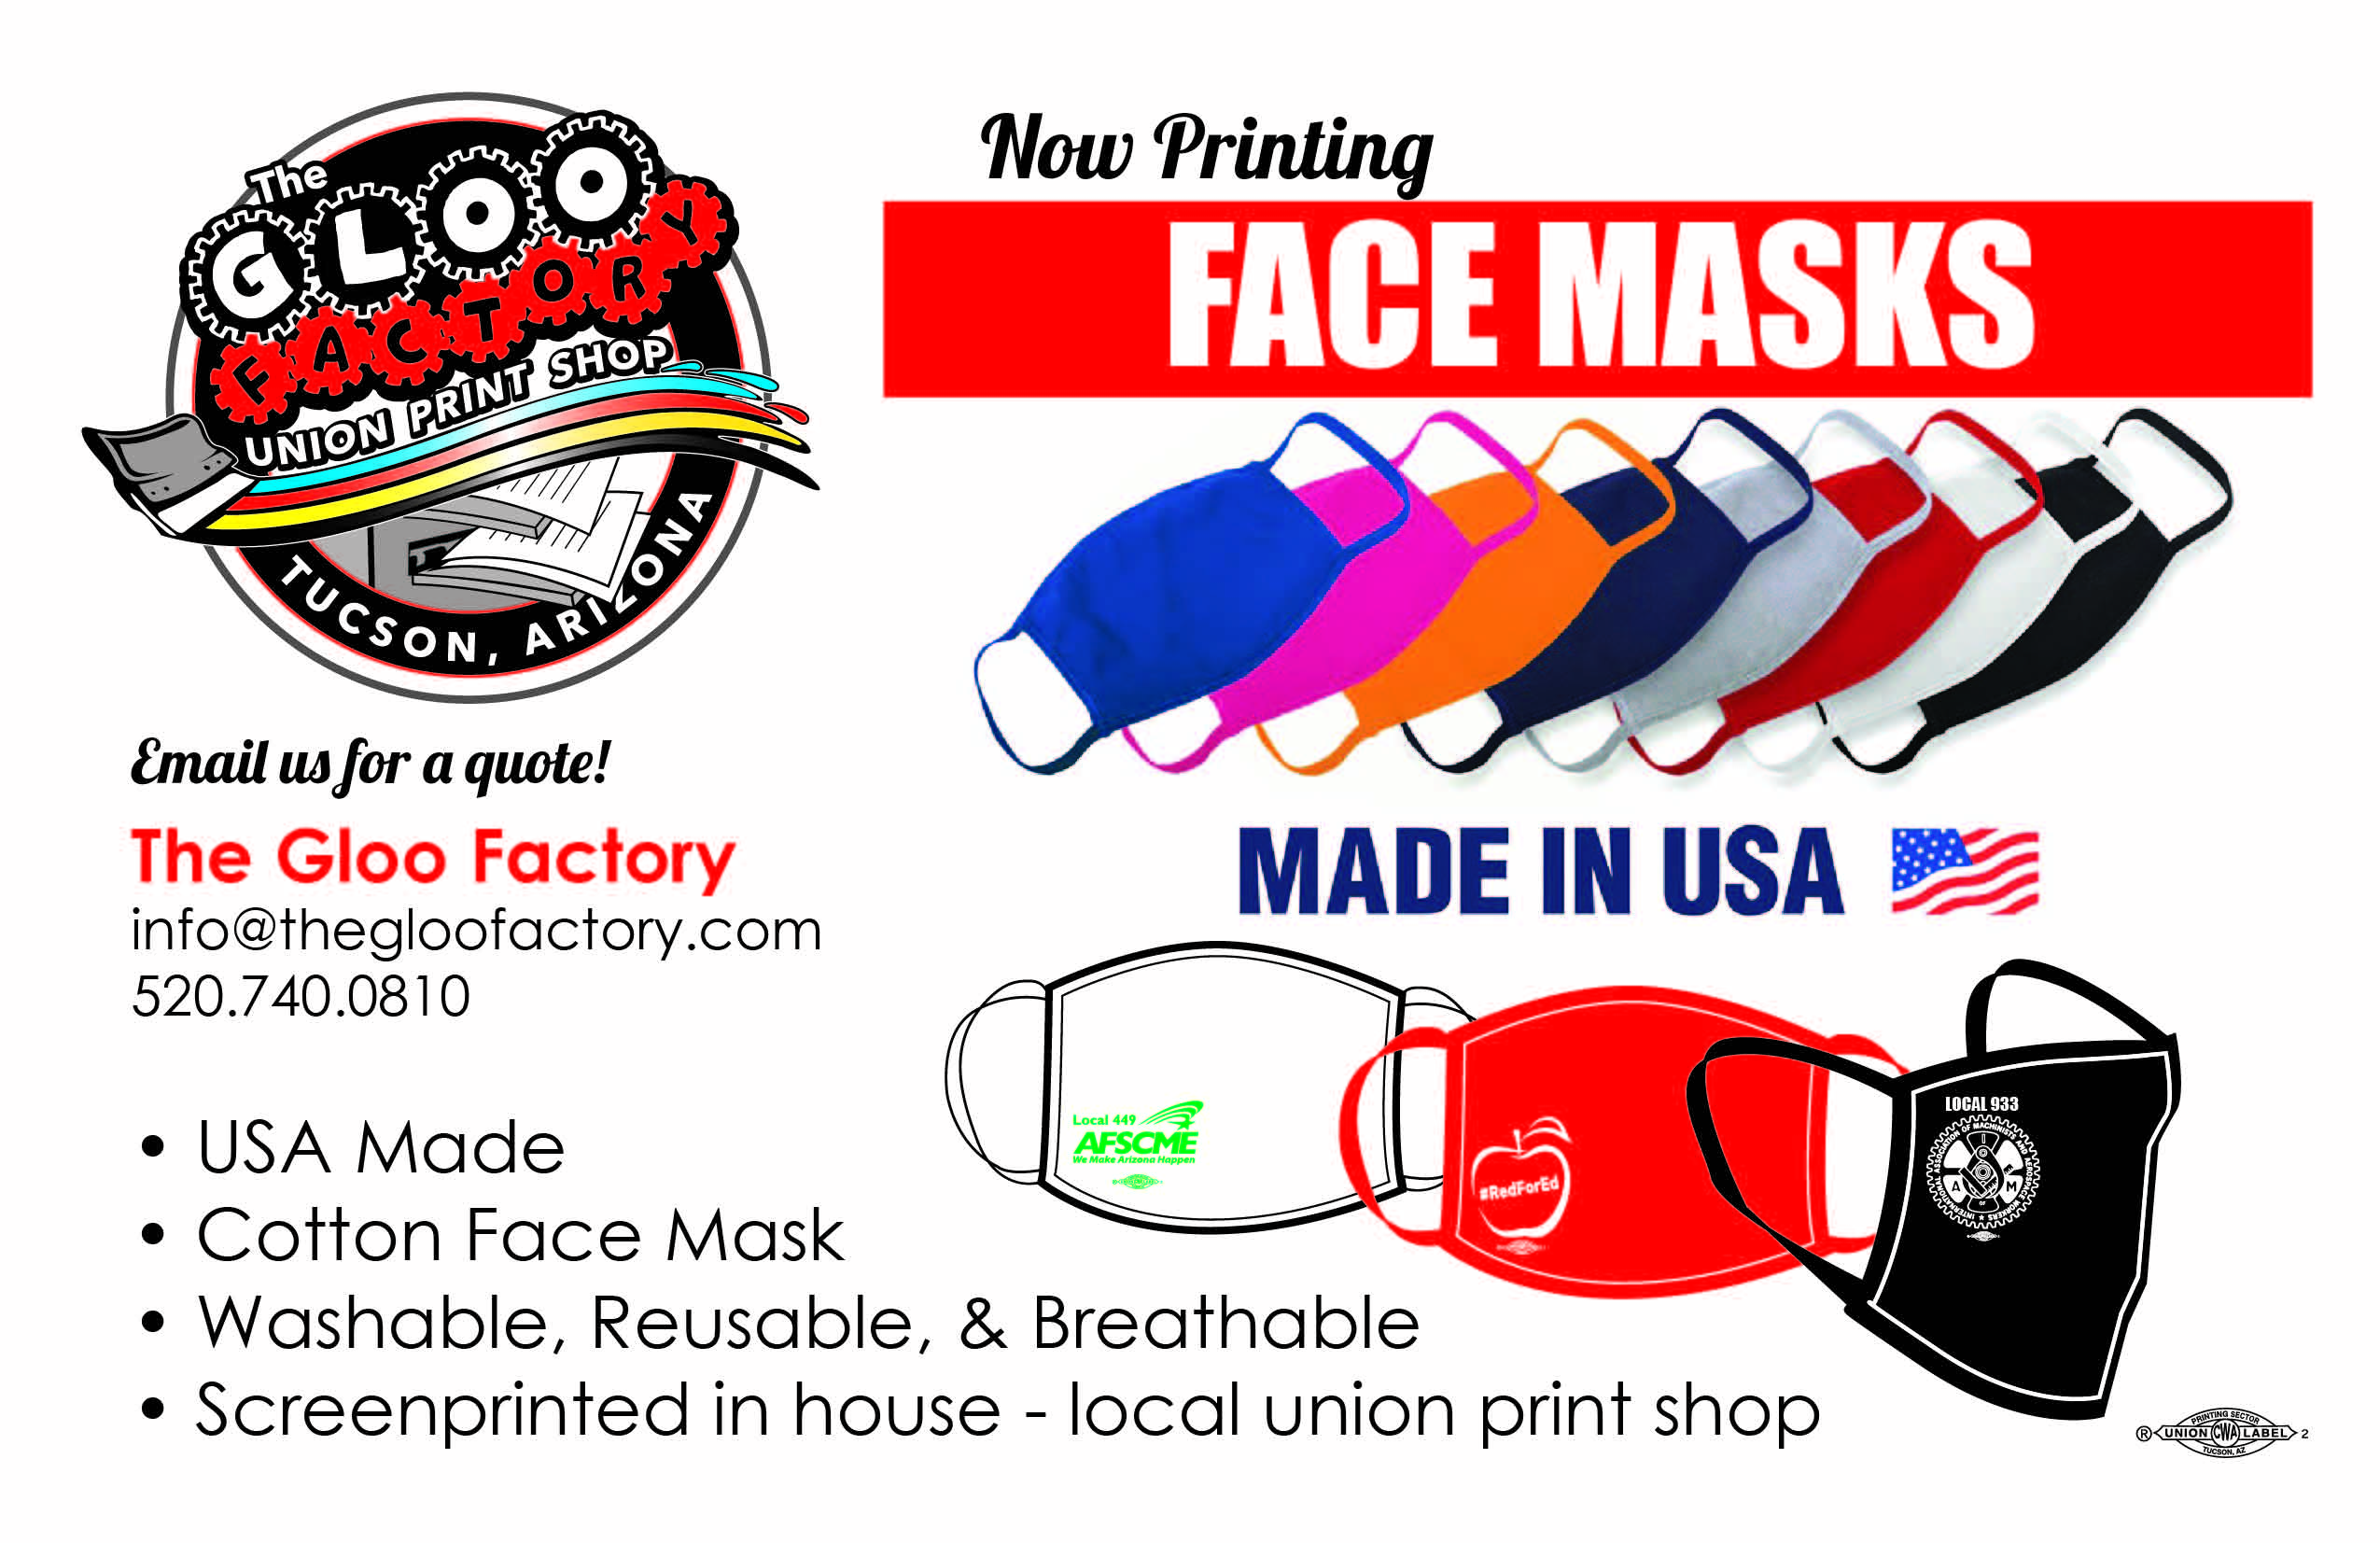 The Gloo Factory Union Print Shop in Tucson, Arizona is now screen printing custom cotton face masks!